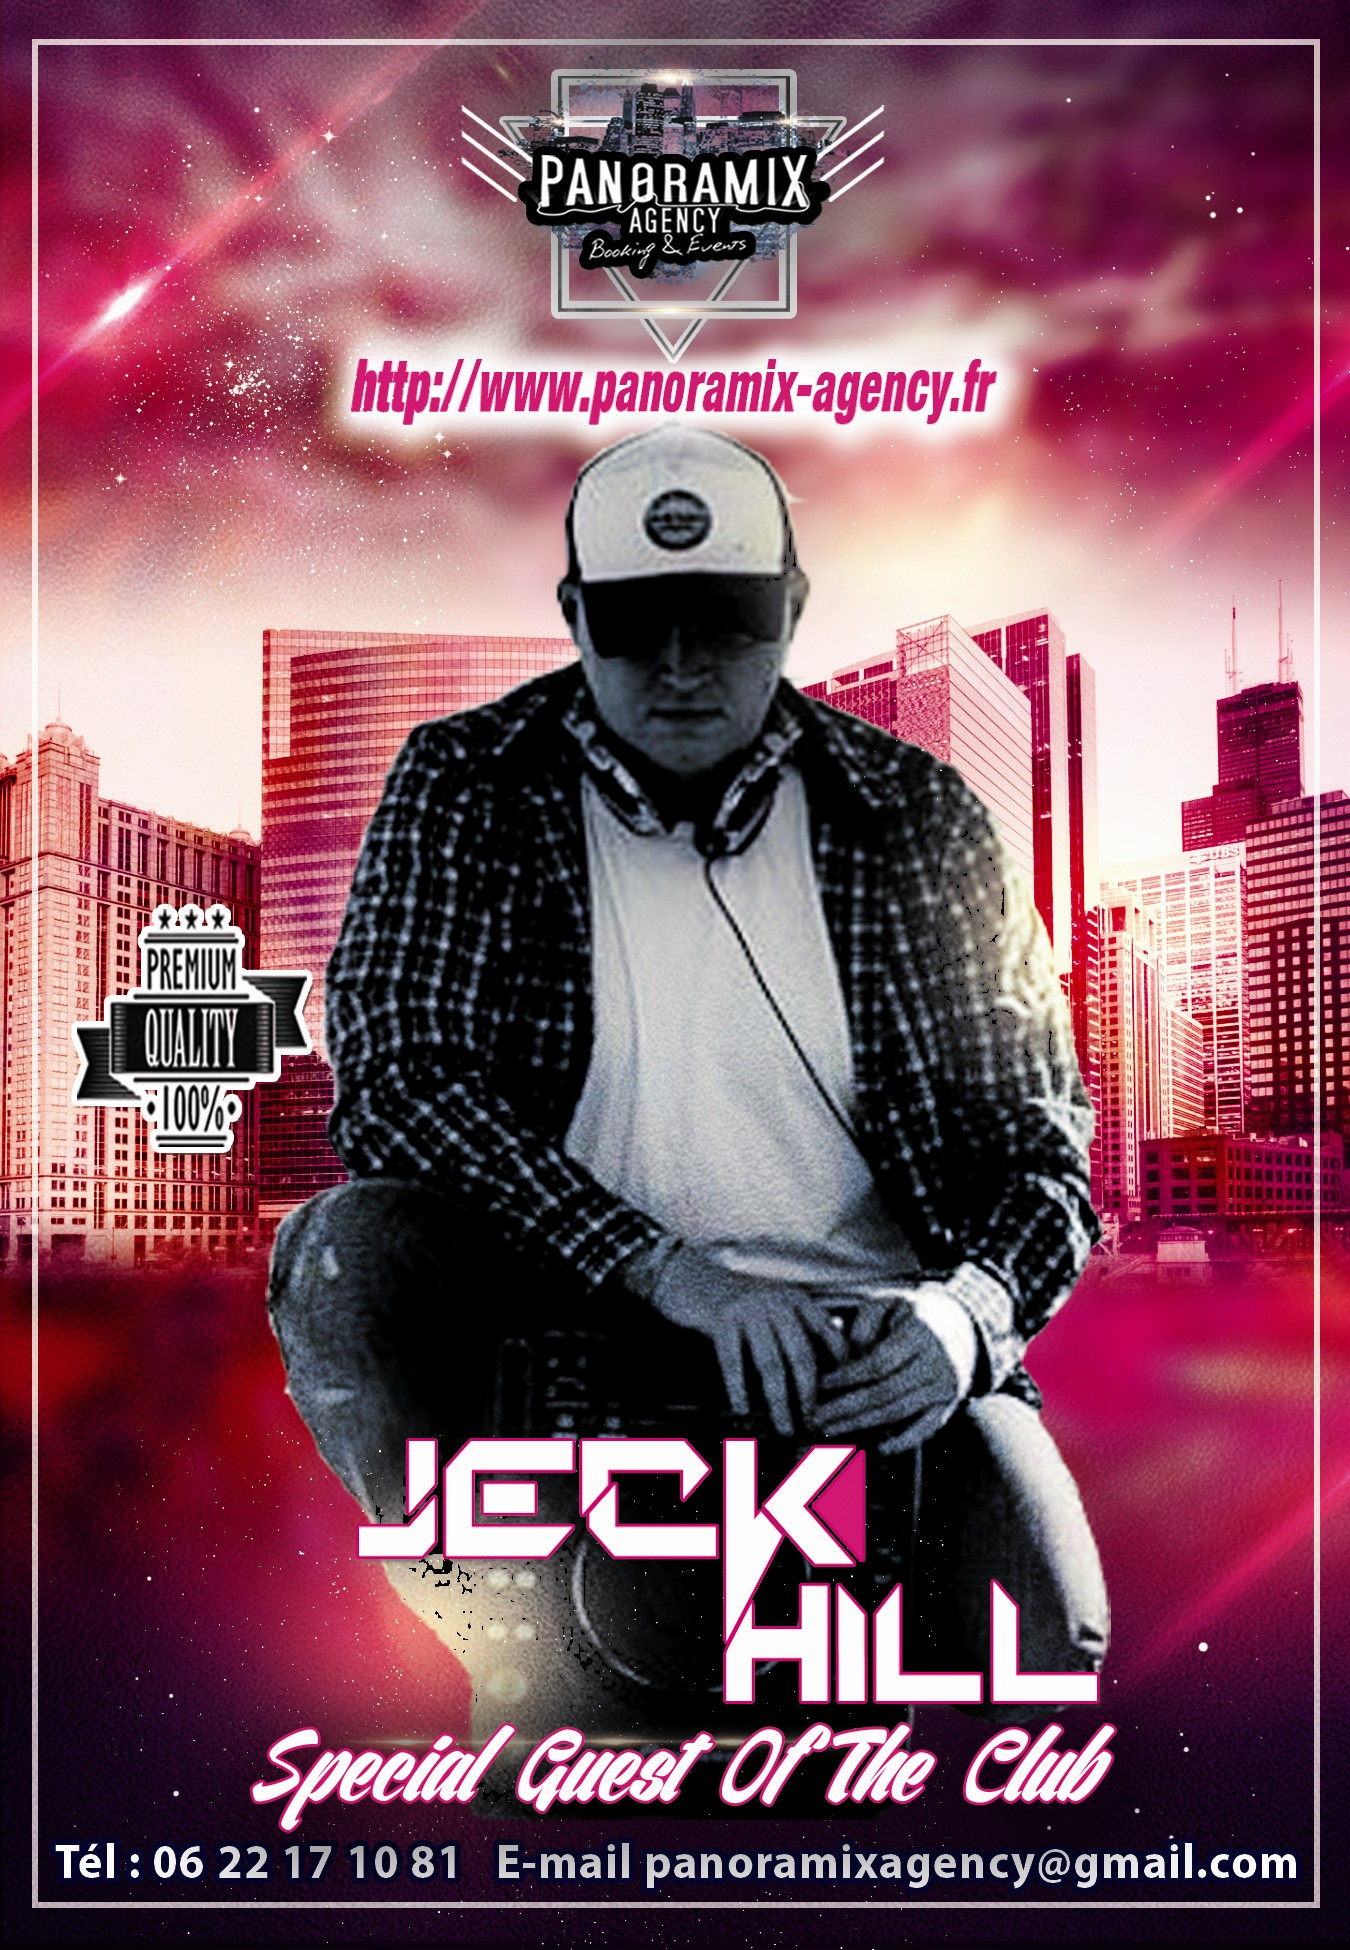 https://panoramix-radio-station.com/wp-content/uploads/2017/04/JECK-HILL-AFFICHE-PANORAMIX-AGENCY.jpg